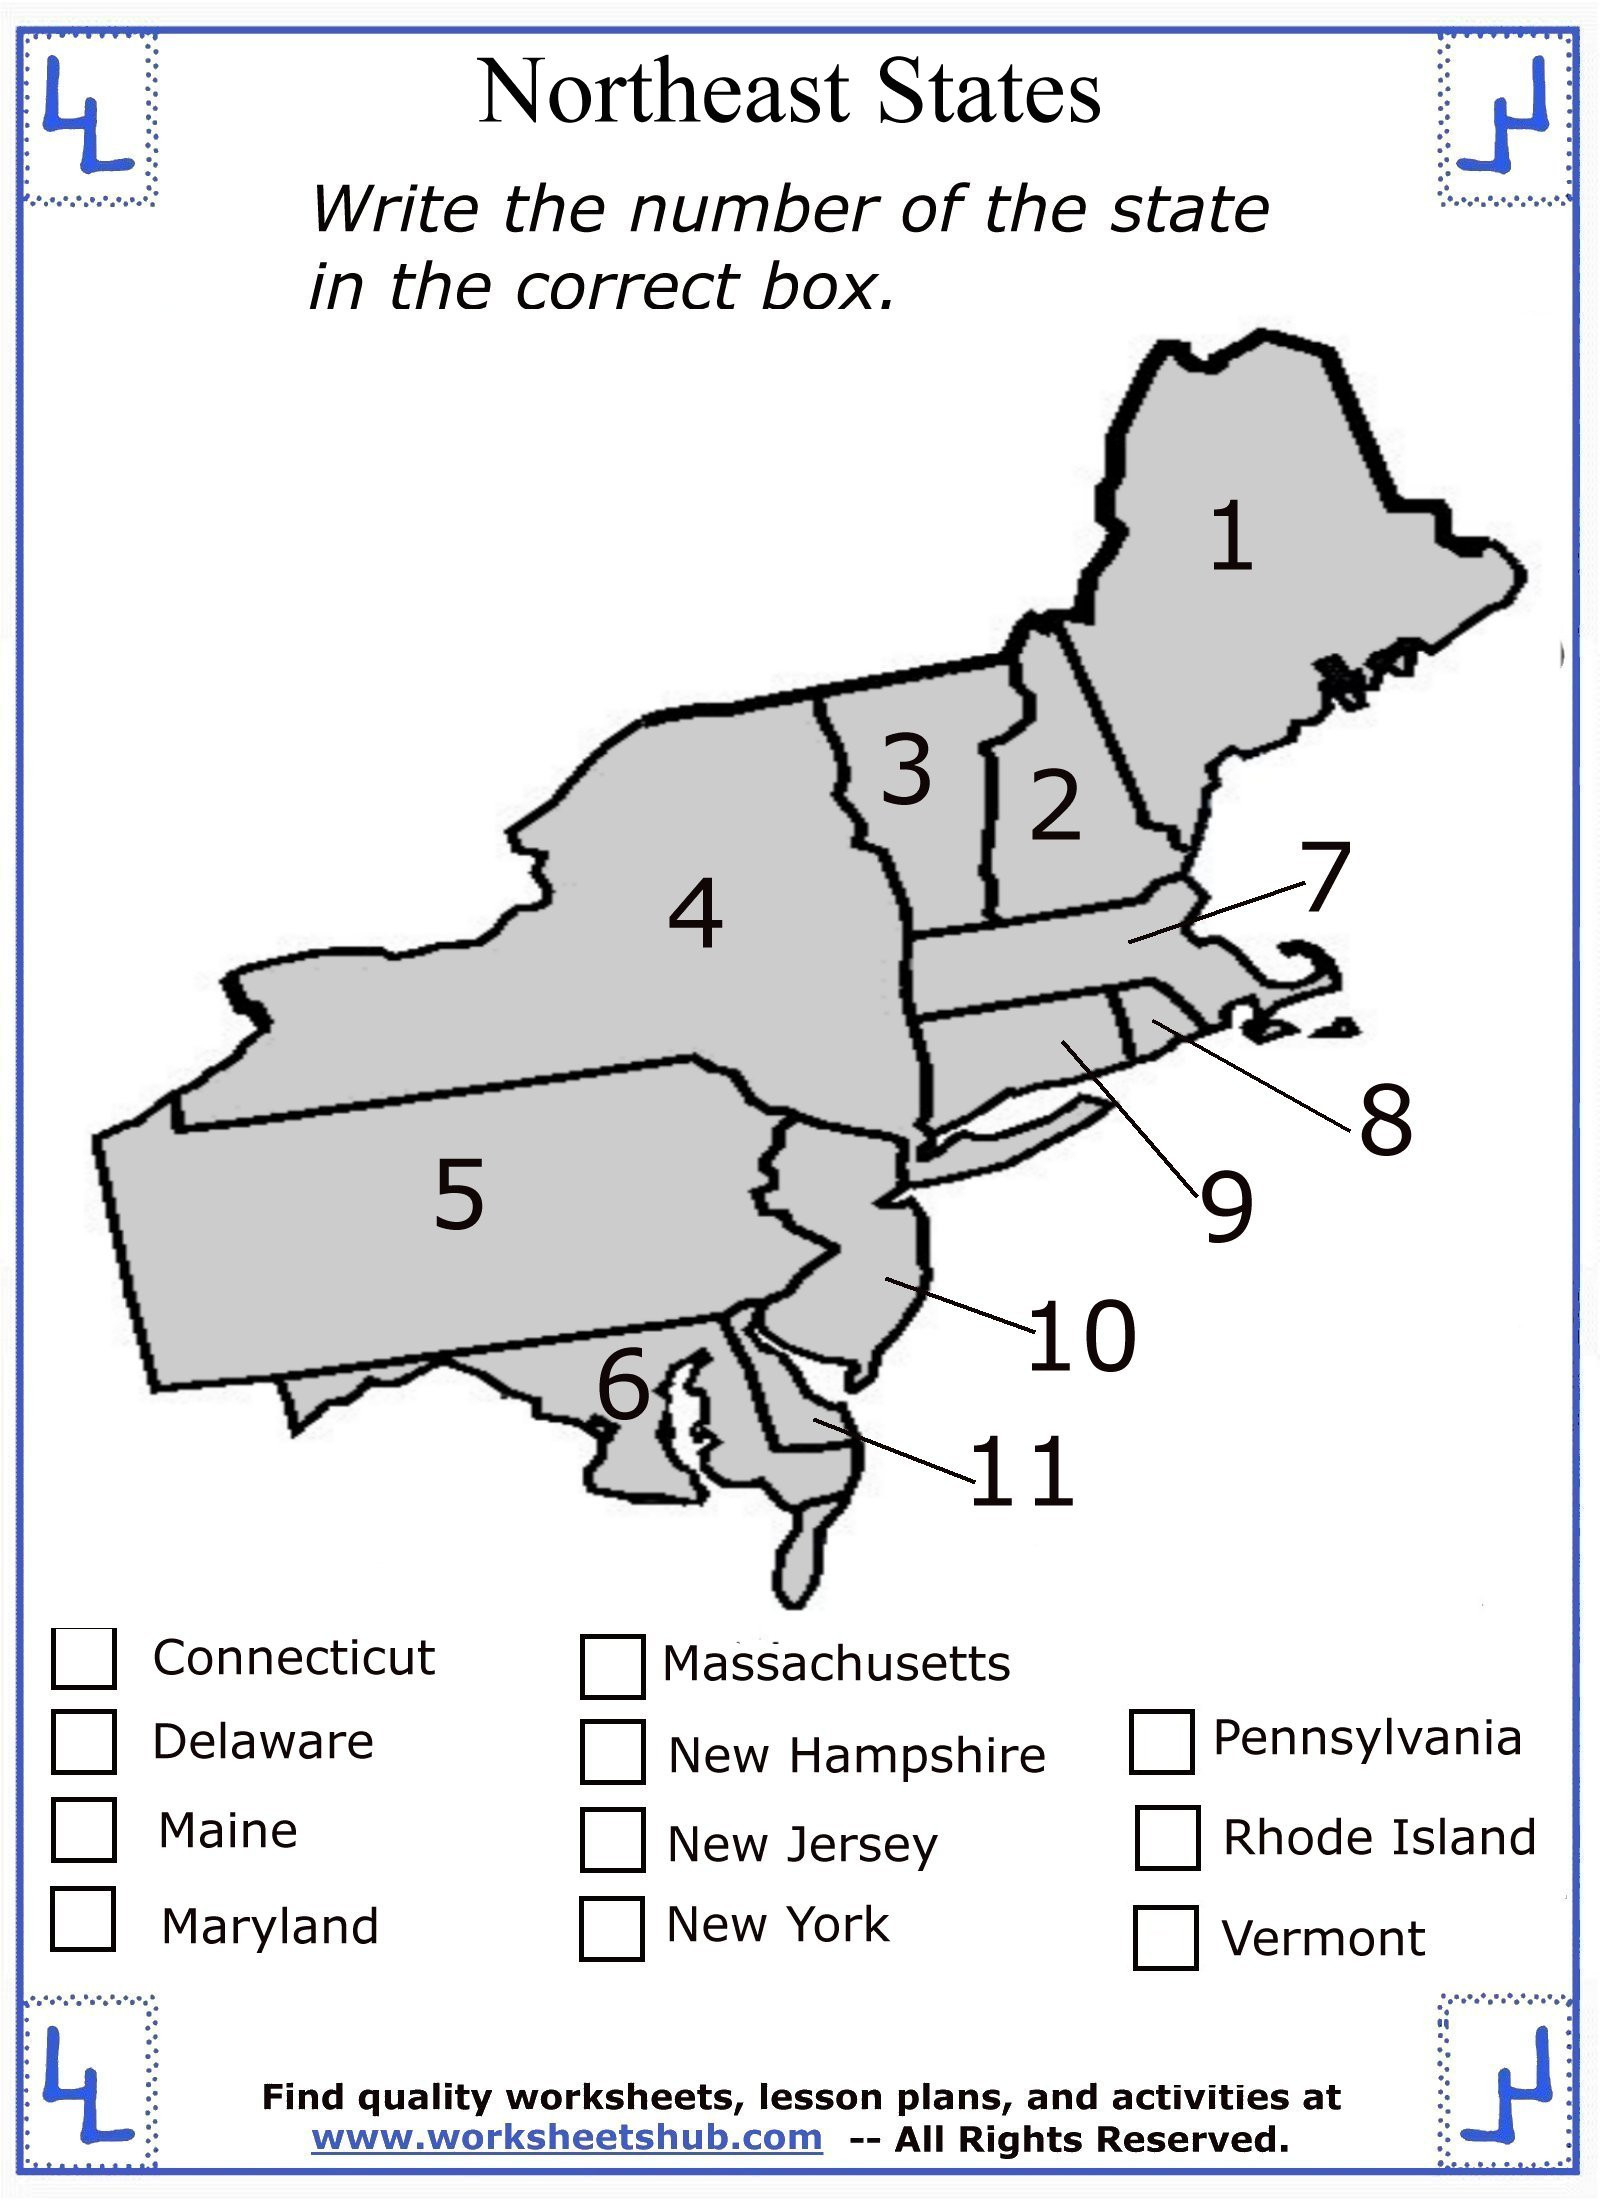 State and Capital Quiz Printable Fourth Grade social Stu S northeast Region States and